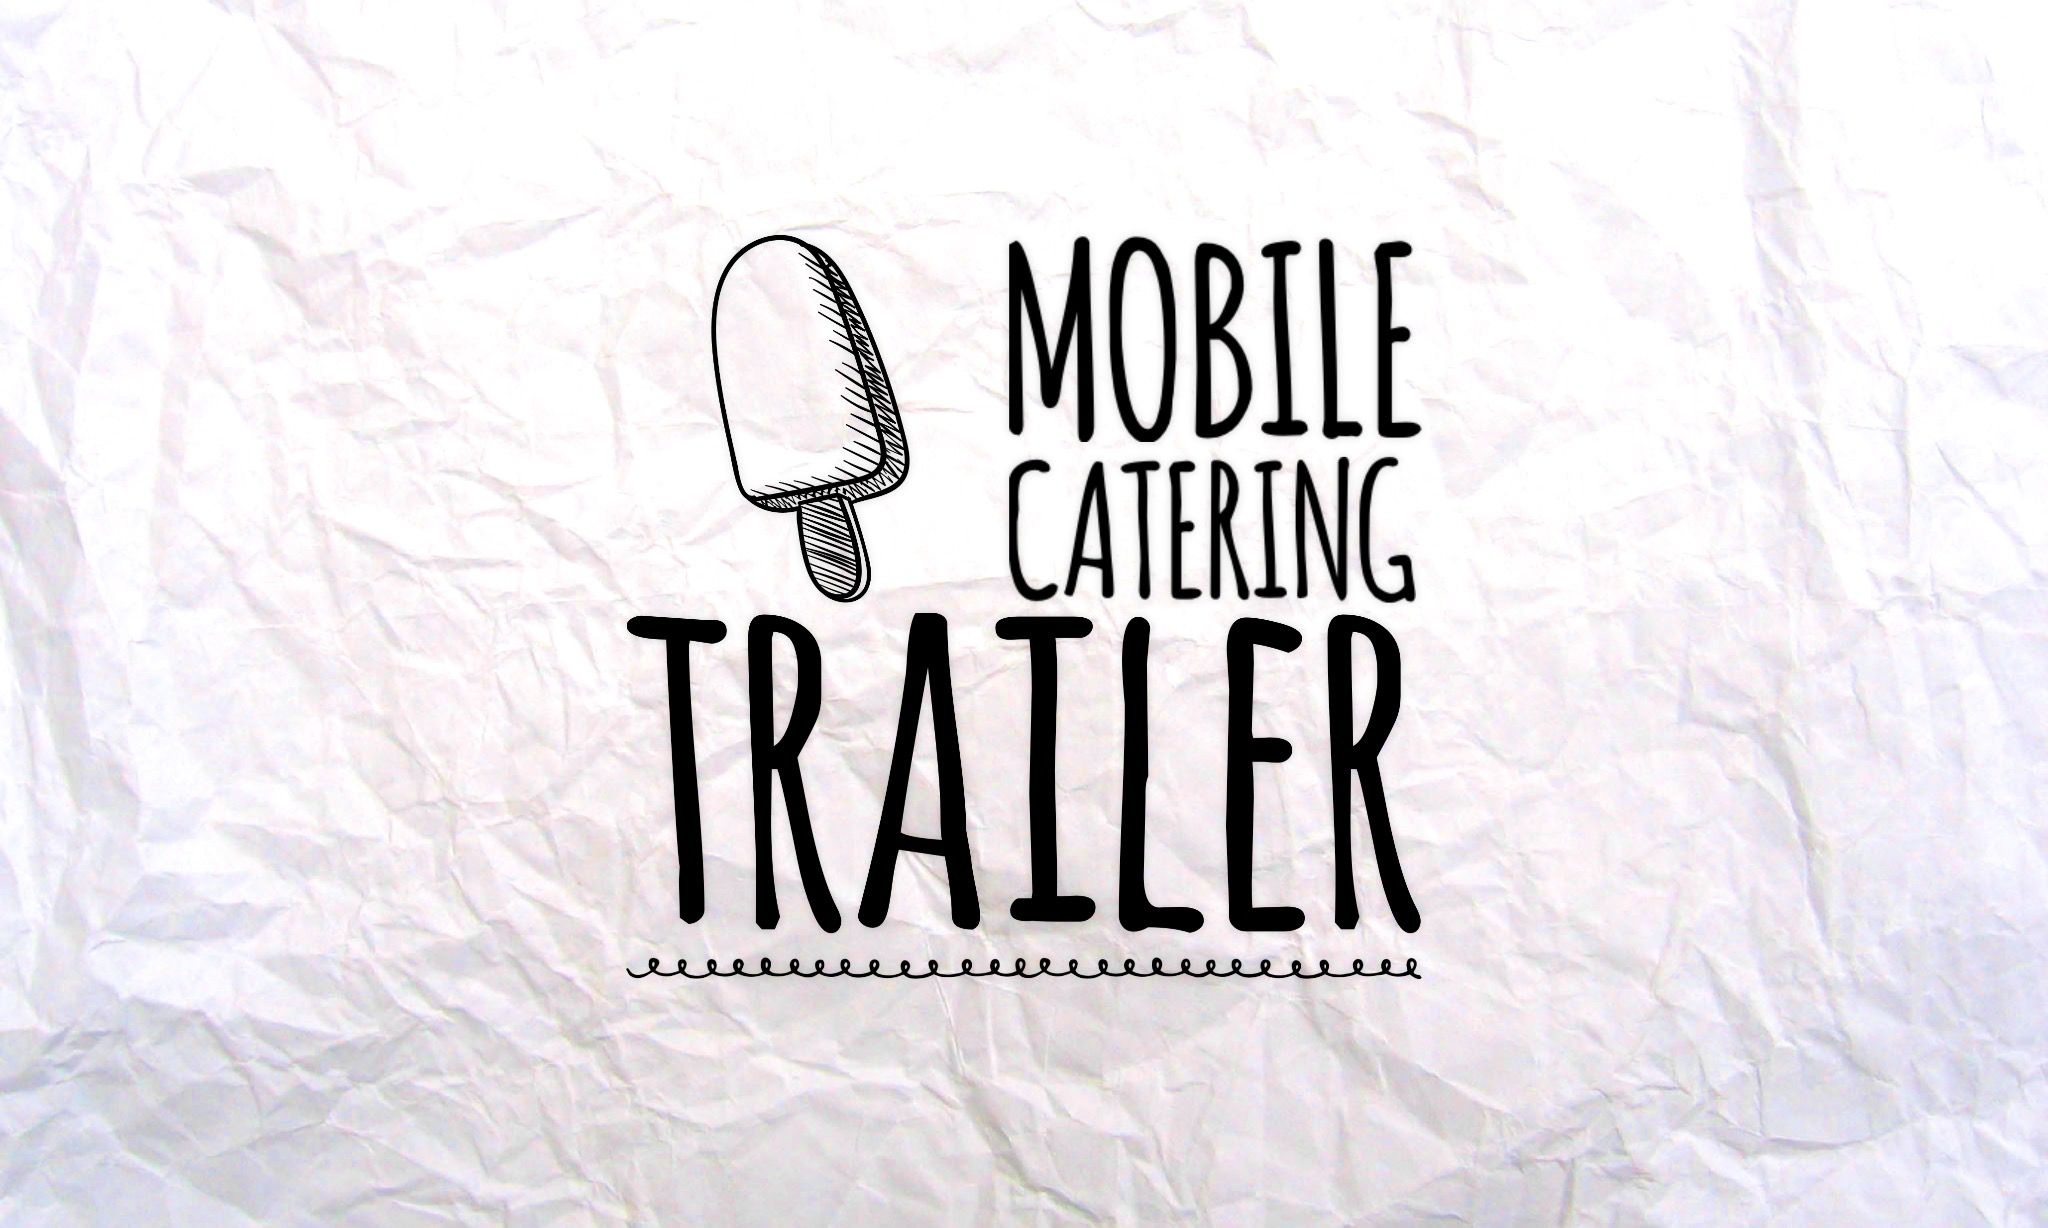 Mobile catering trailer | Rolling-Street